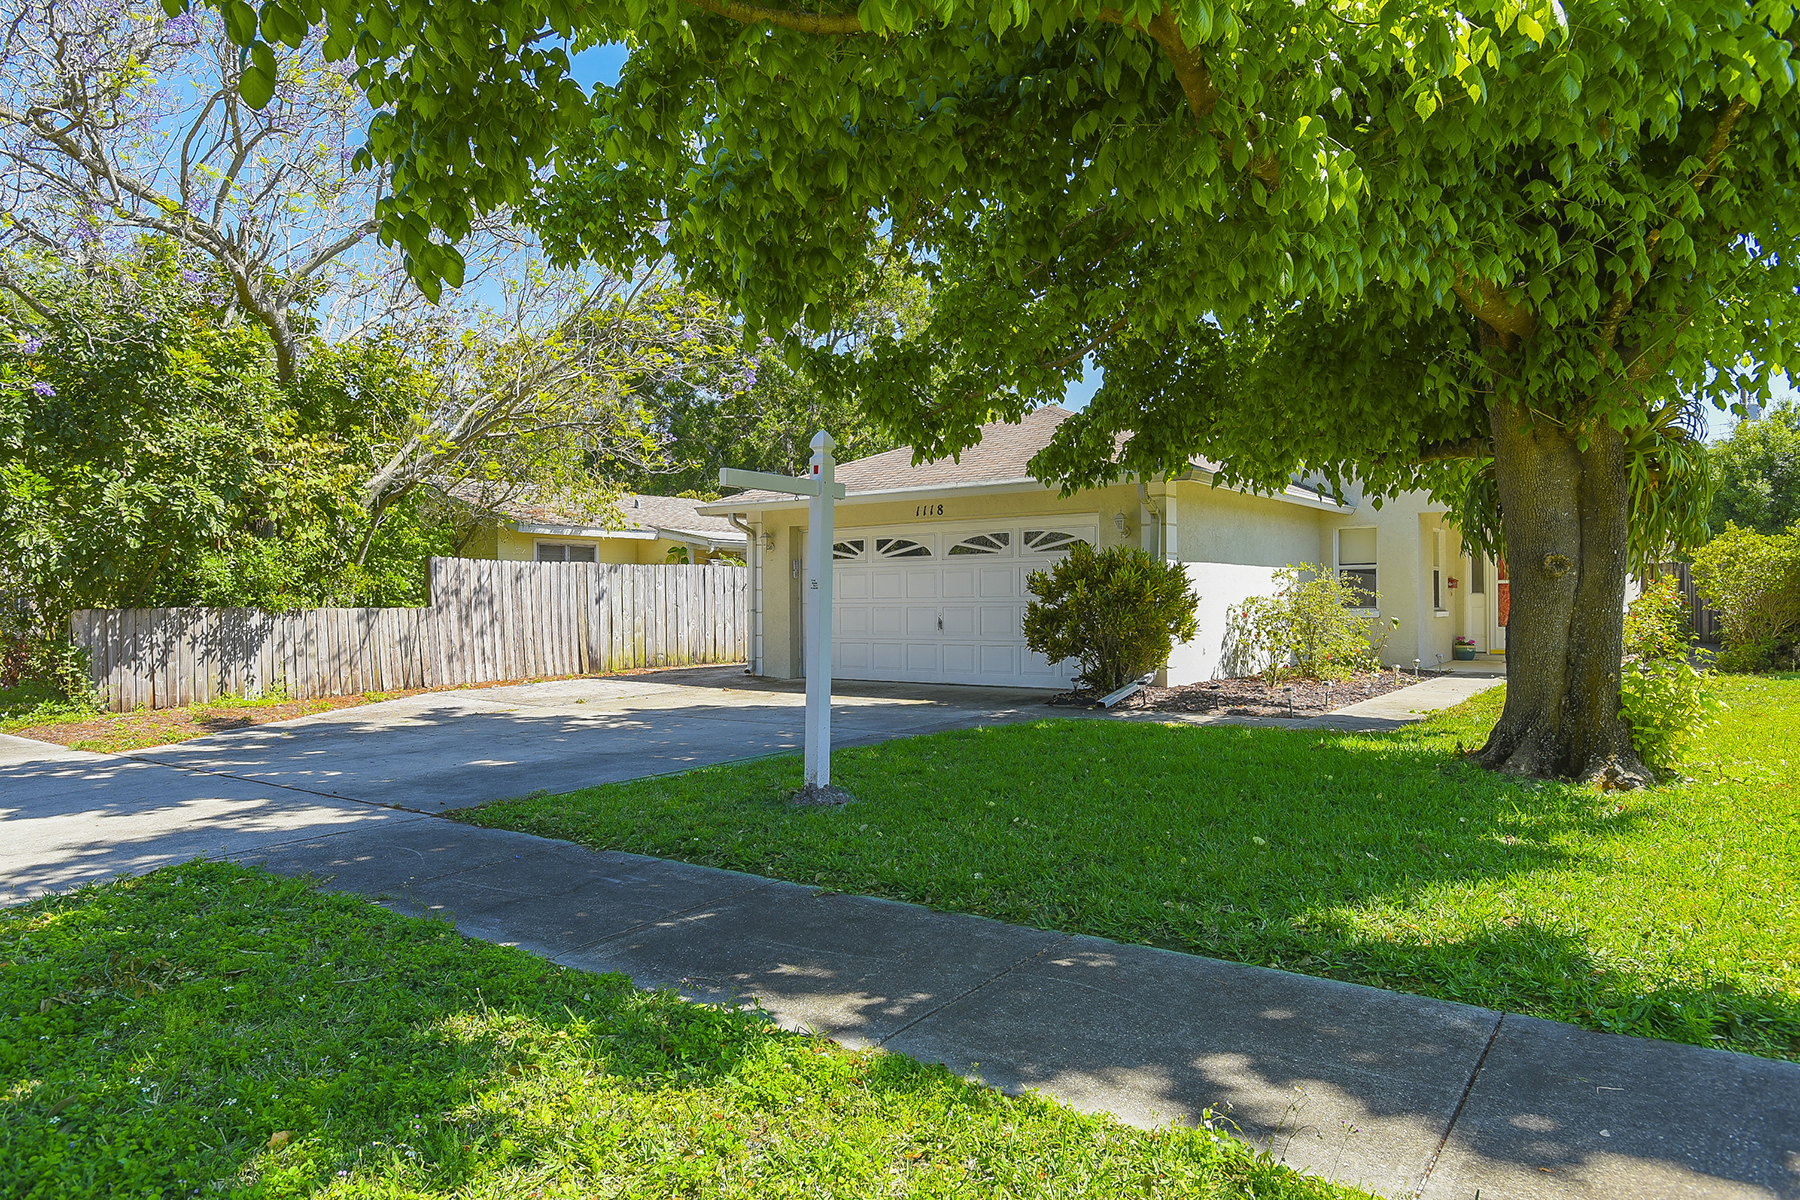 Single Family Homes for Sale at ST. PETERSBURG 1118 55th Ave N St. Petersburg, Florida 33703 United States